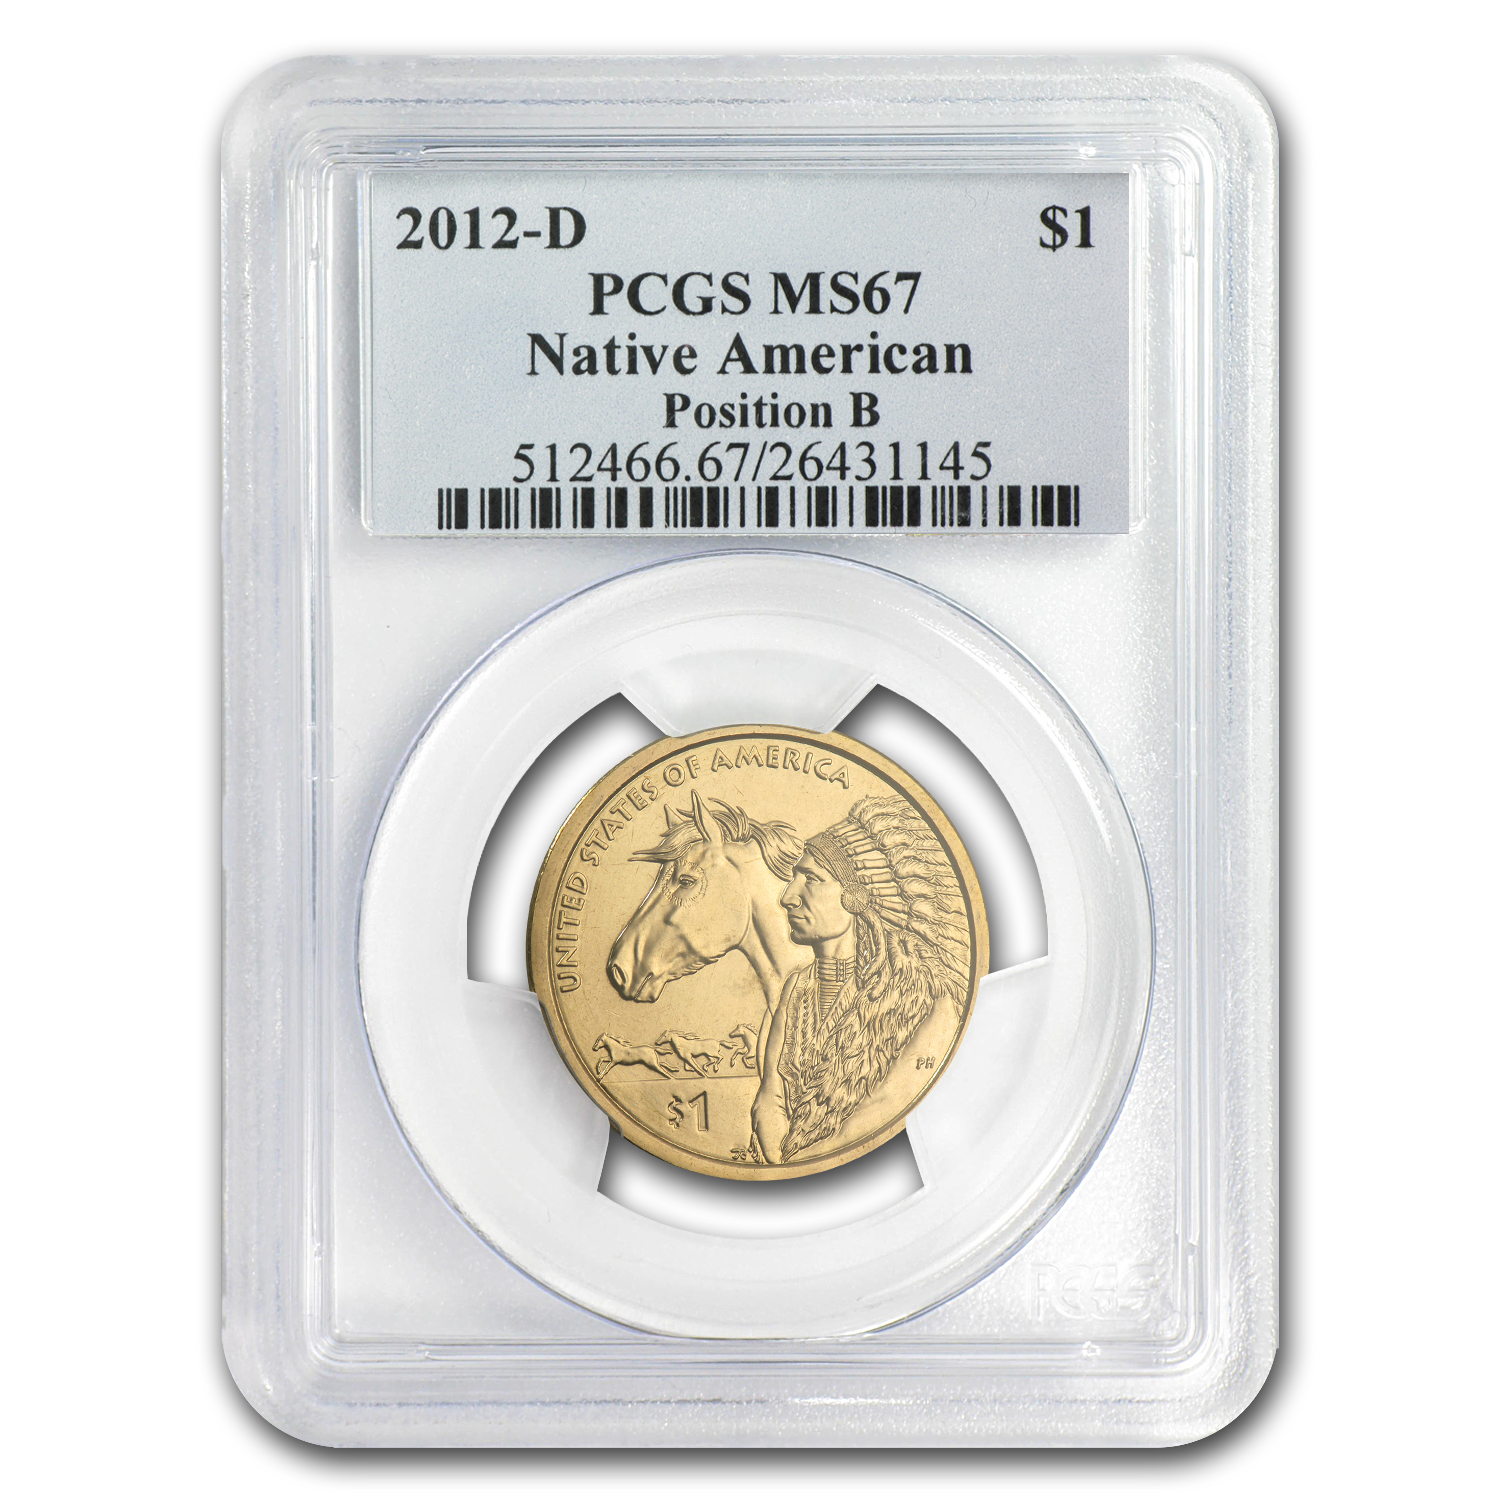 2012-D Native American Sacagawea Dollar Position B MS-67 PCGS